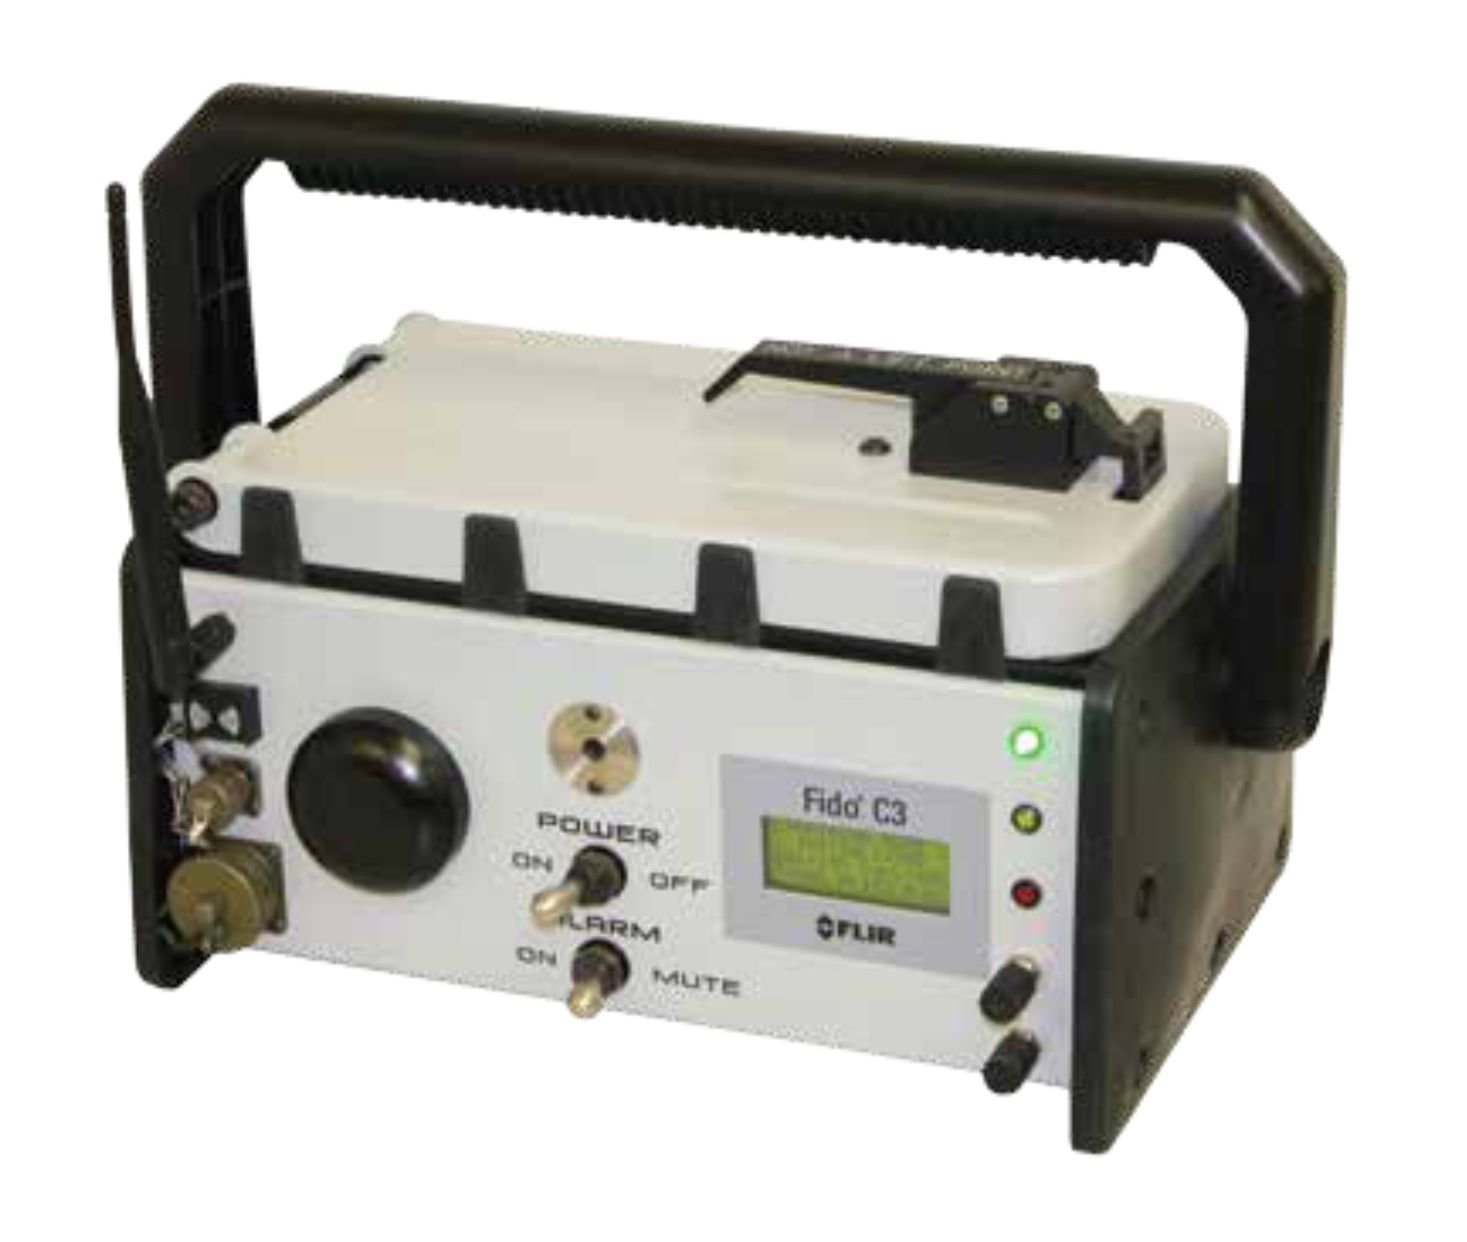 FIDO C3 Continuous Chemical Air Monitoring